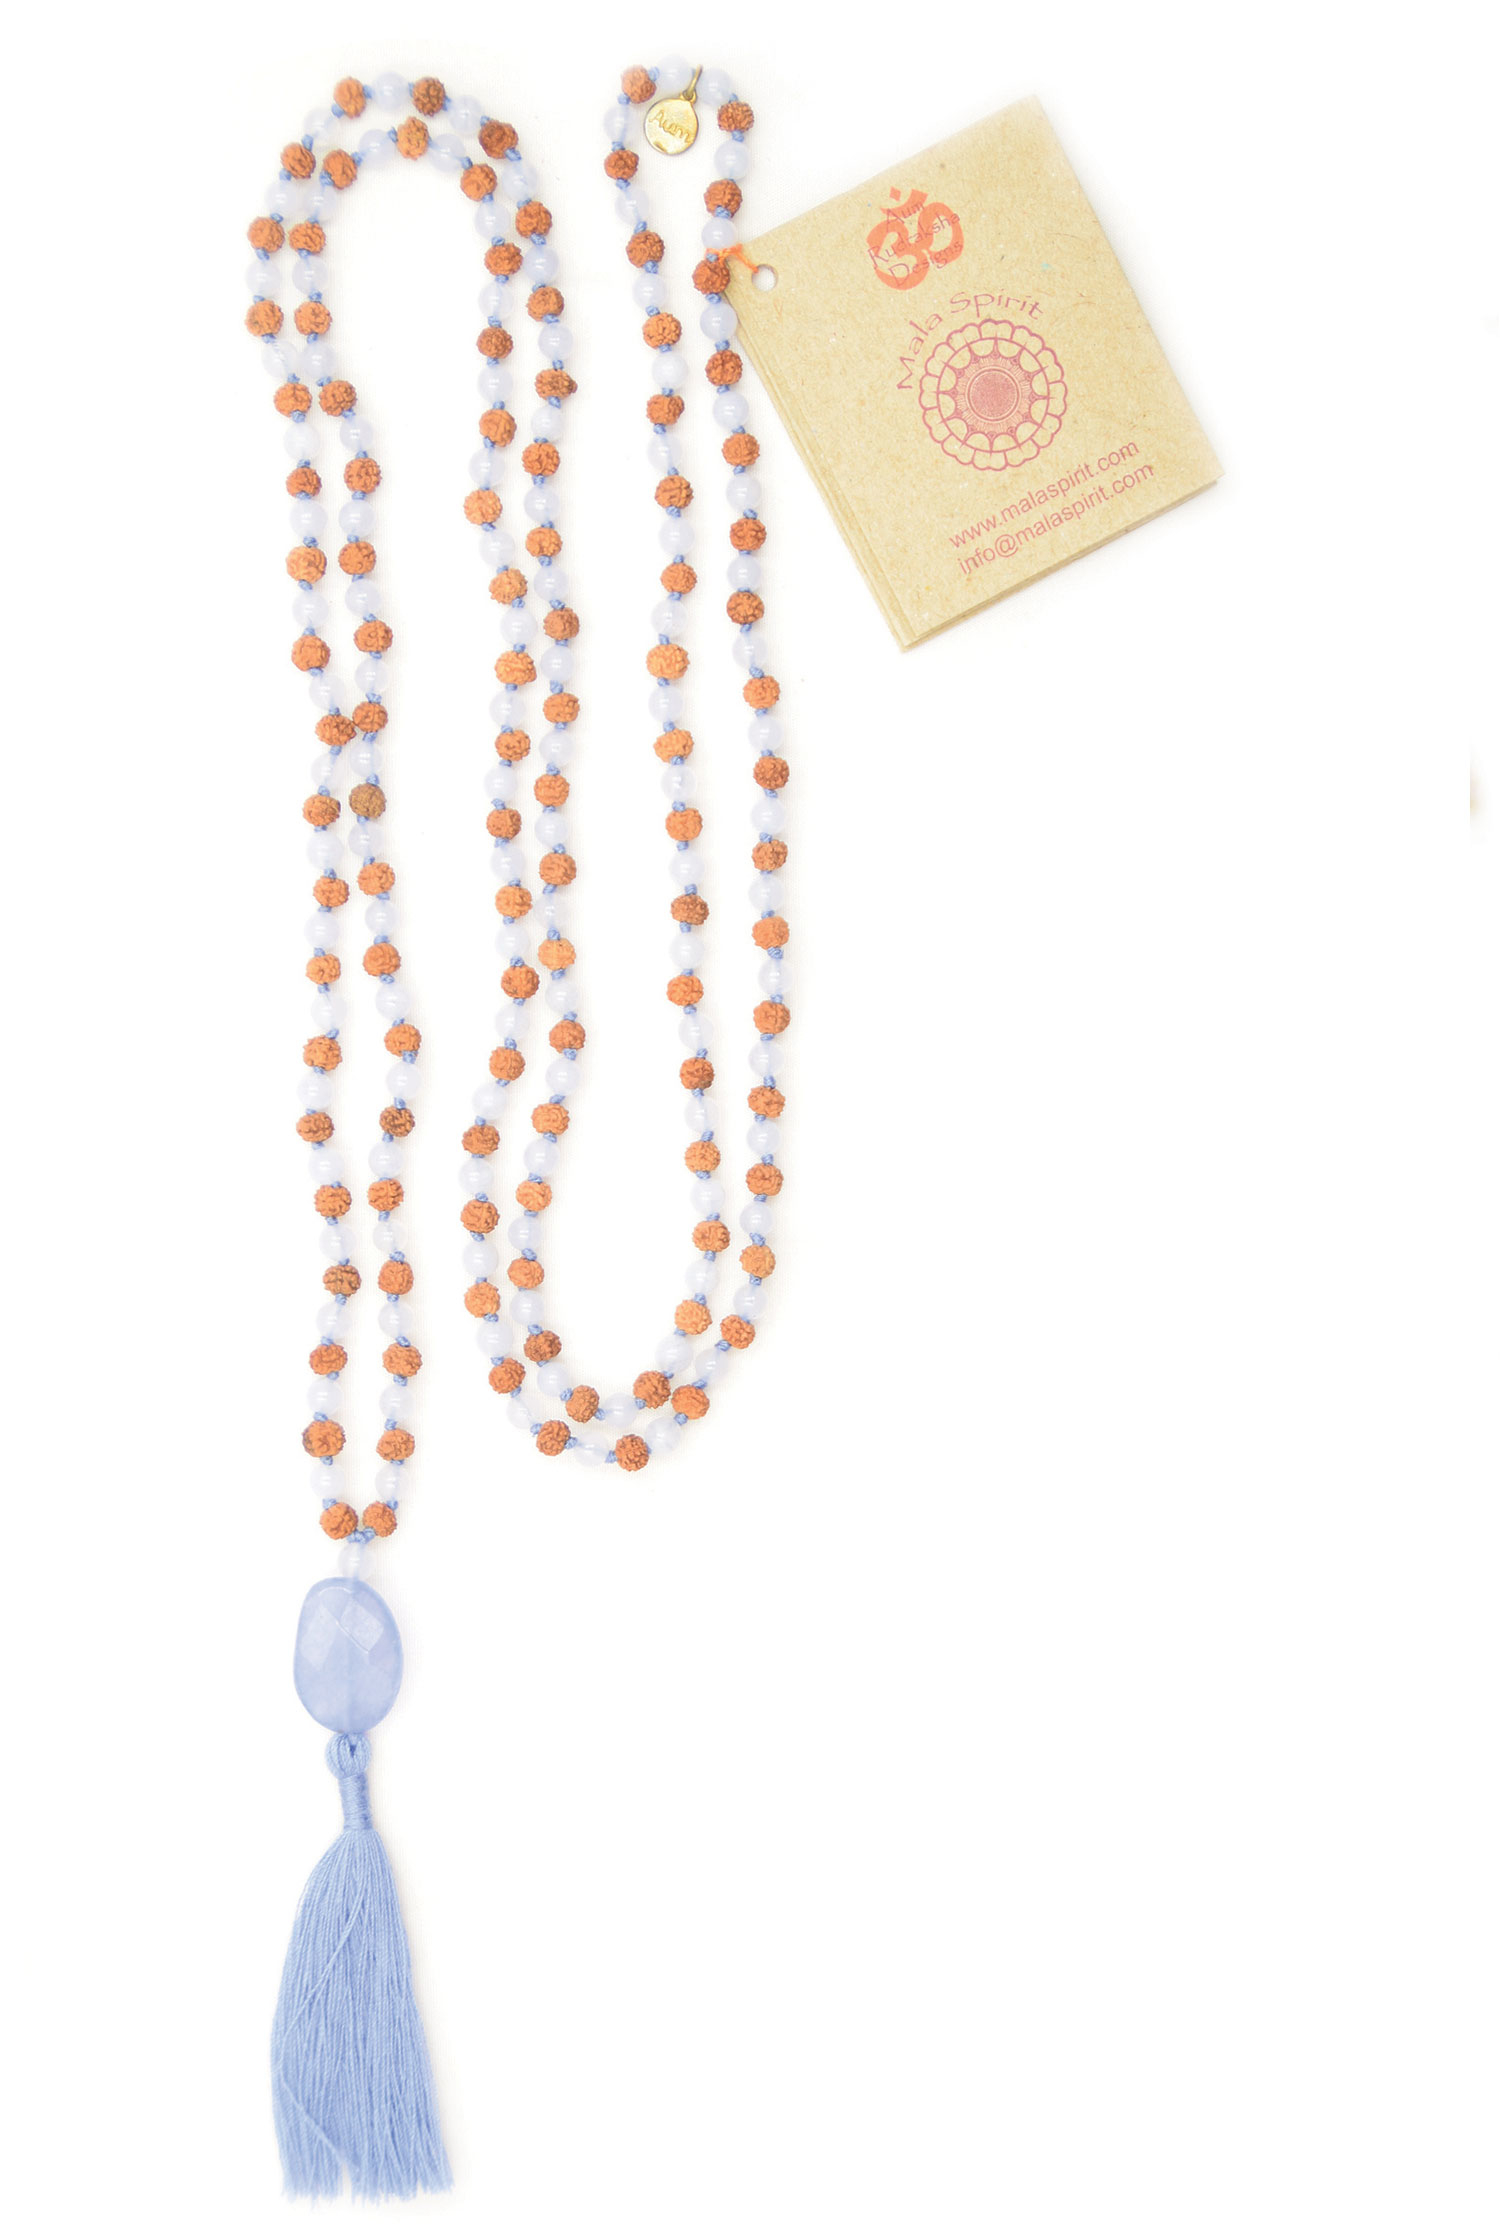 Divine Expression mala ketting